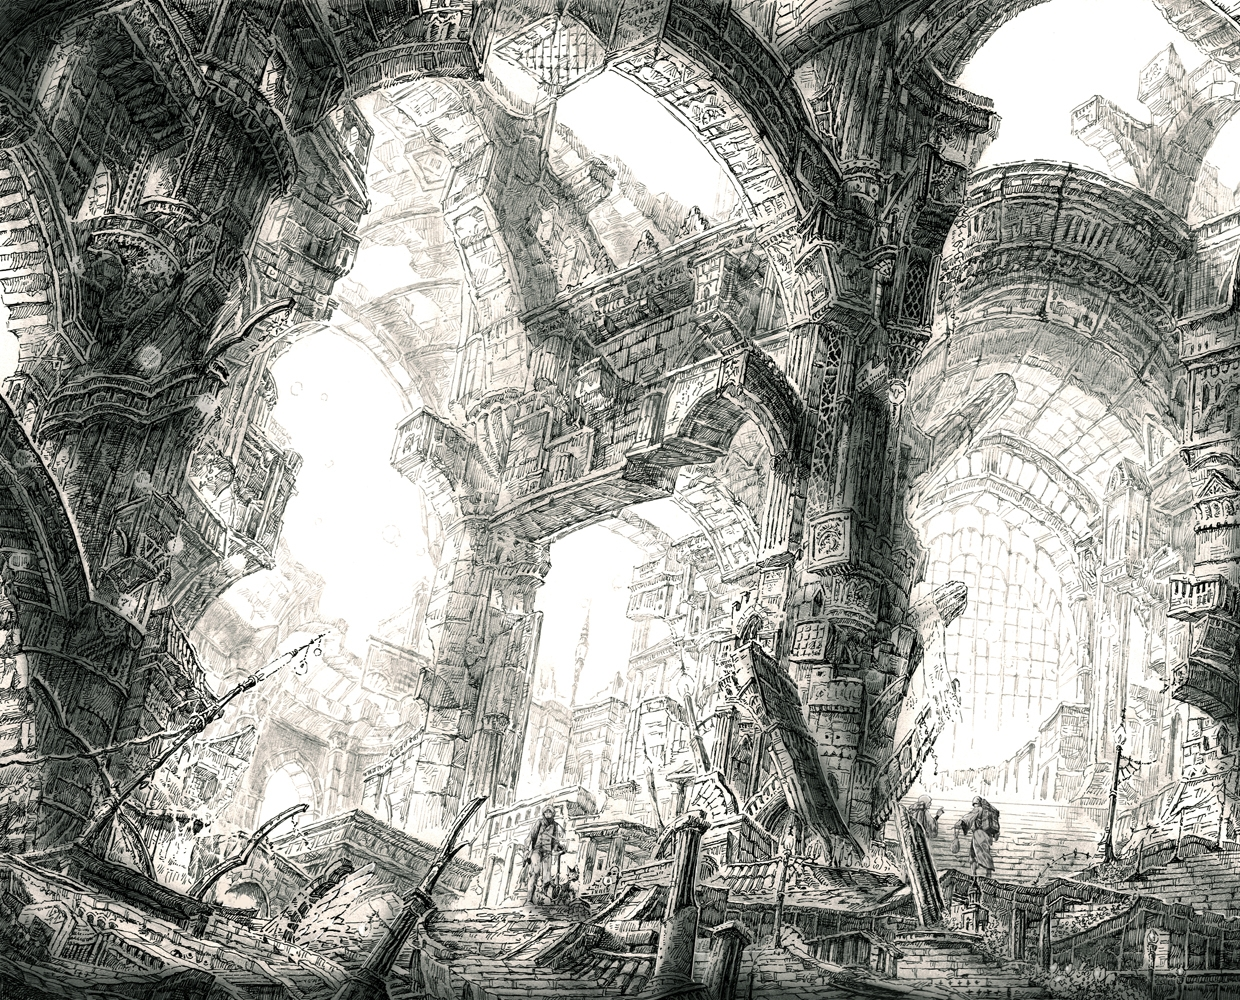 18-Buttress-Columns-Mita-Mitauzo-実-田-く-ら-Intricate-Japanese-Architectural-Drawings-www-designstack-co